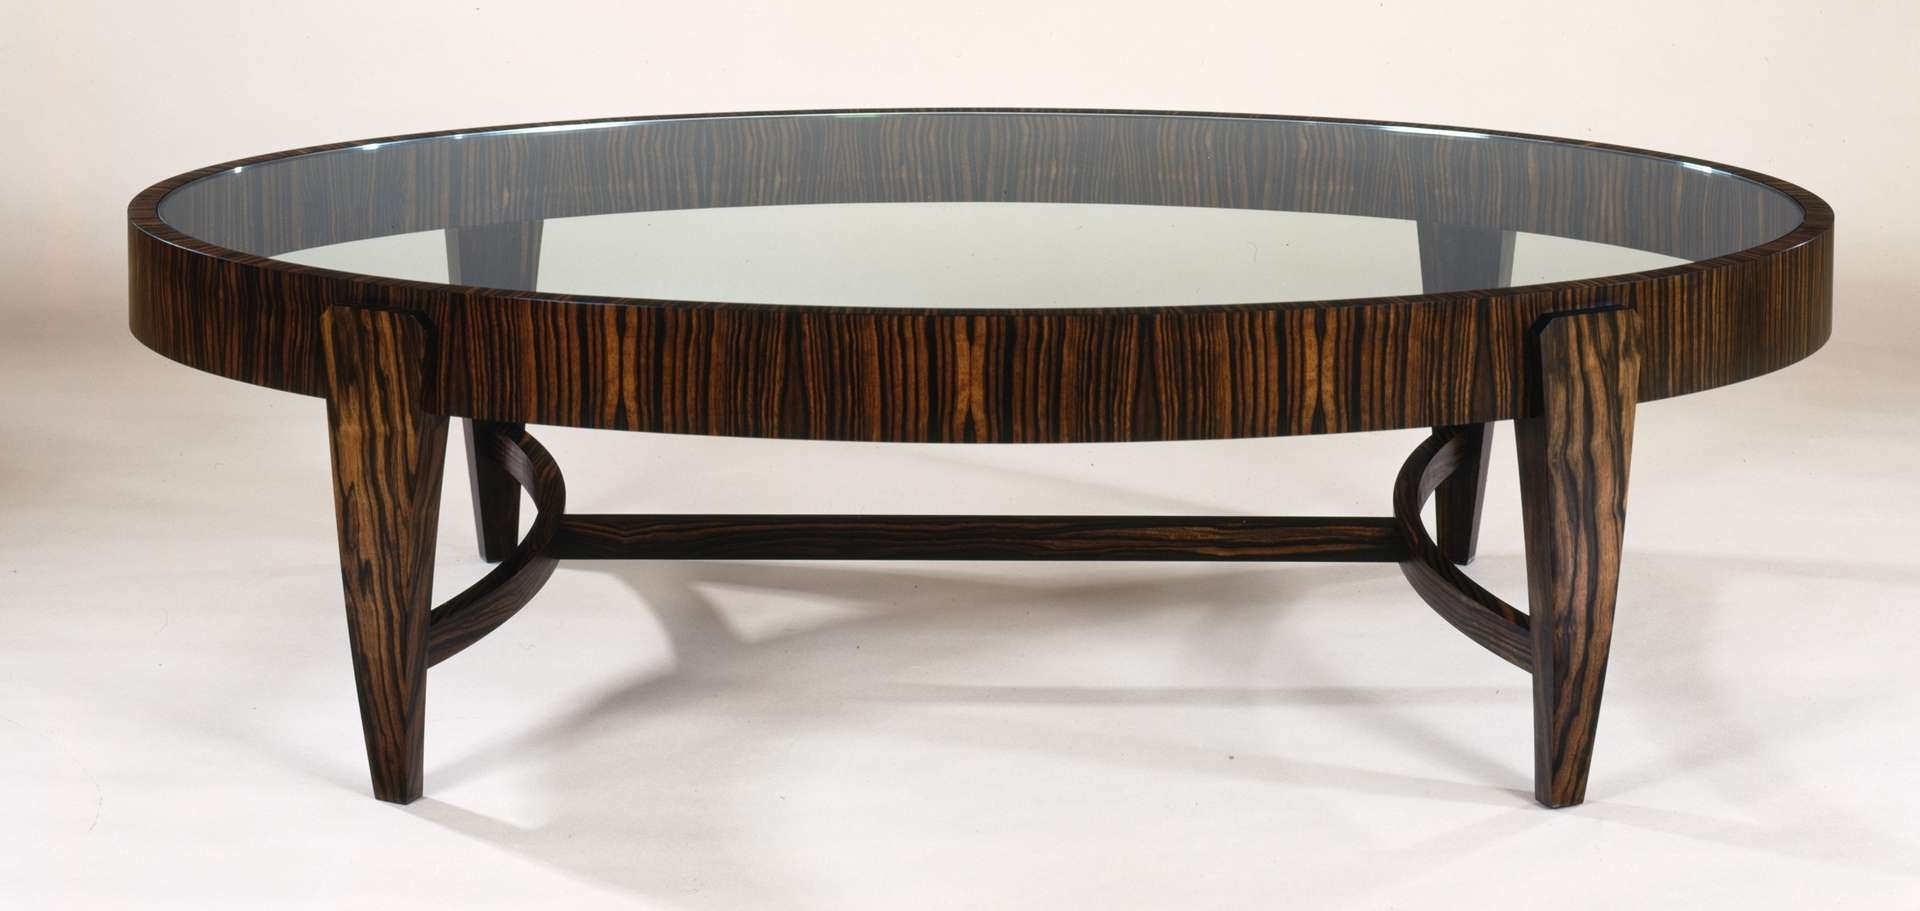 Oval Coffee Table Contemporary Coffee Tables For Small Spaces With Well Liked Oblong Coffee Tables (Gallery 2 of 20)